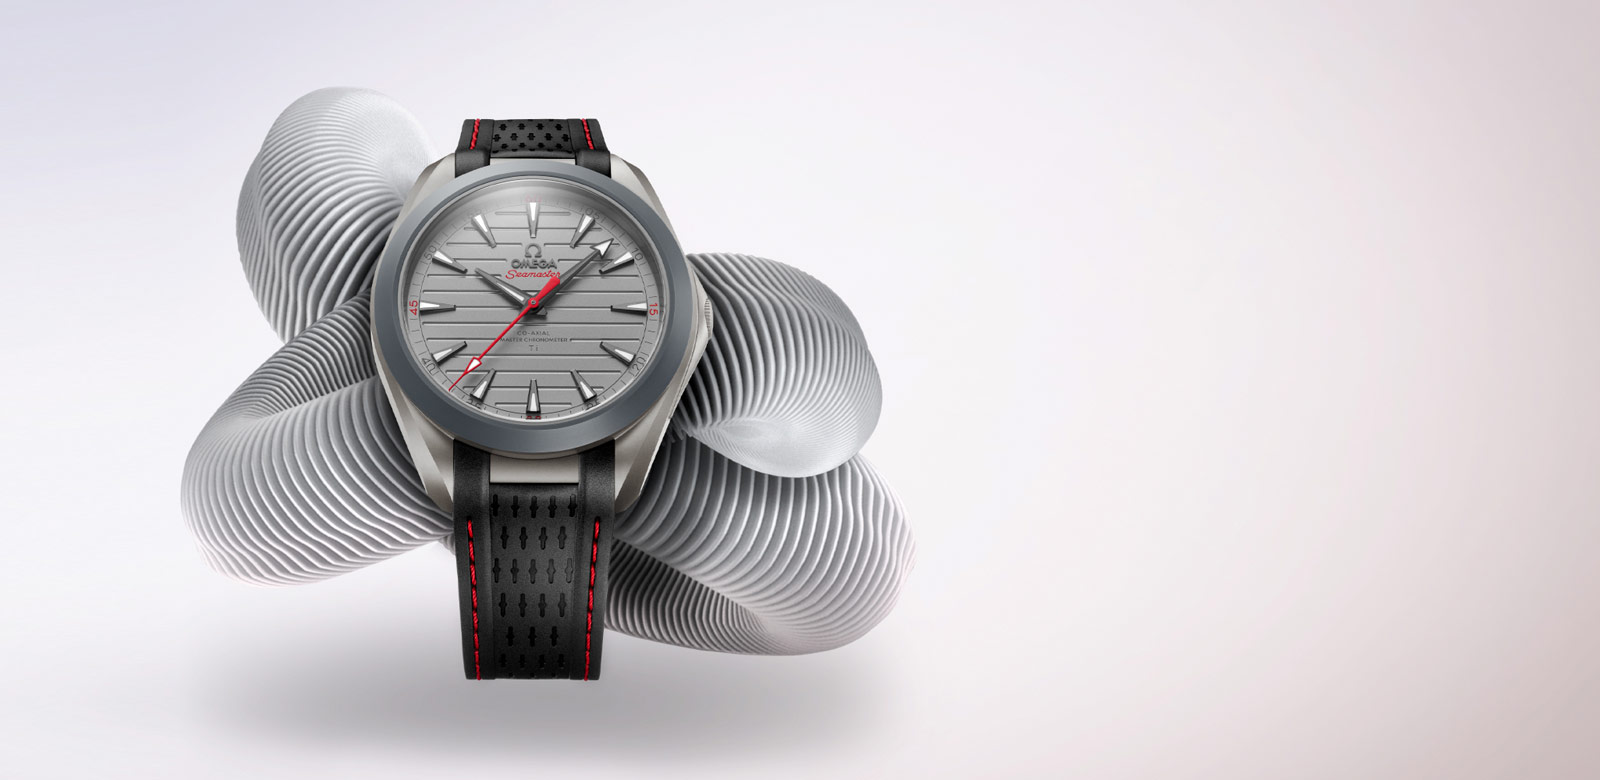 OMEGA® Swiss Luxury Watches Since 1848 Carousel 1 - 74635